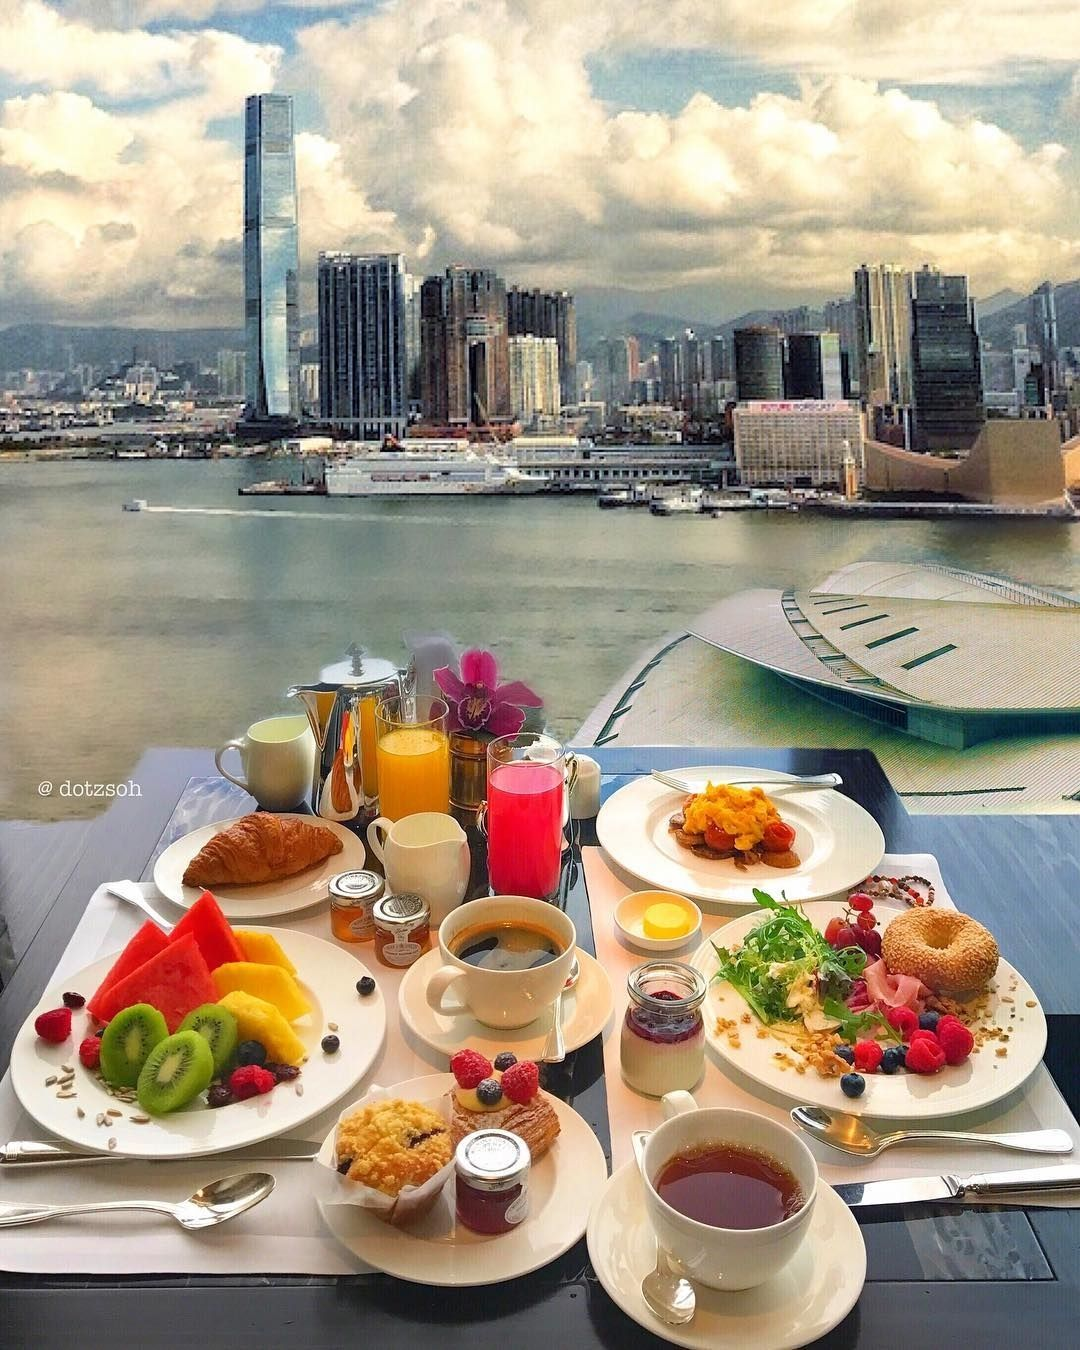 Always Great To Wake Up To A Lovely Breakfast And Amazing View Of